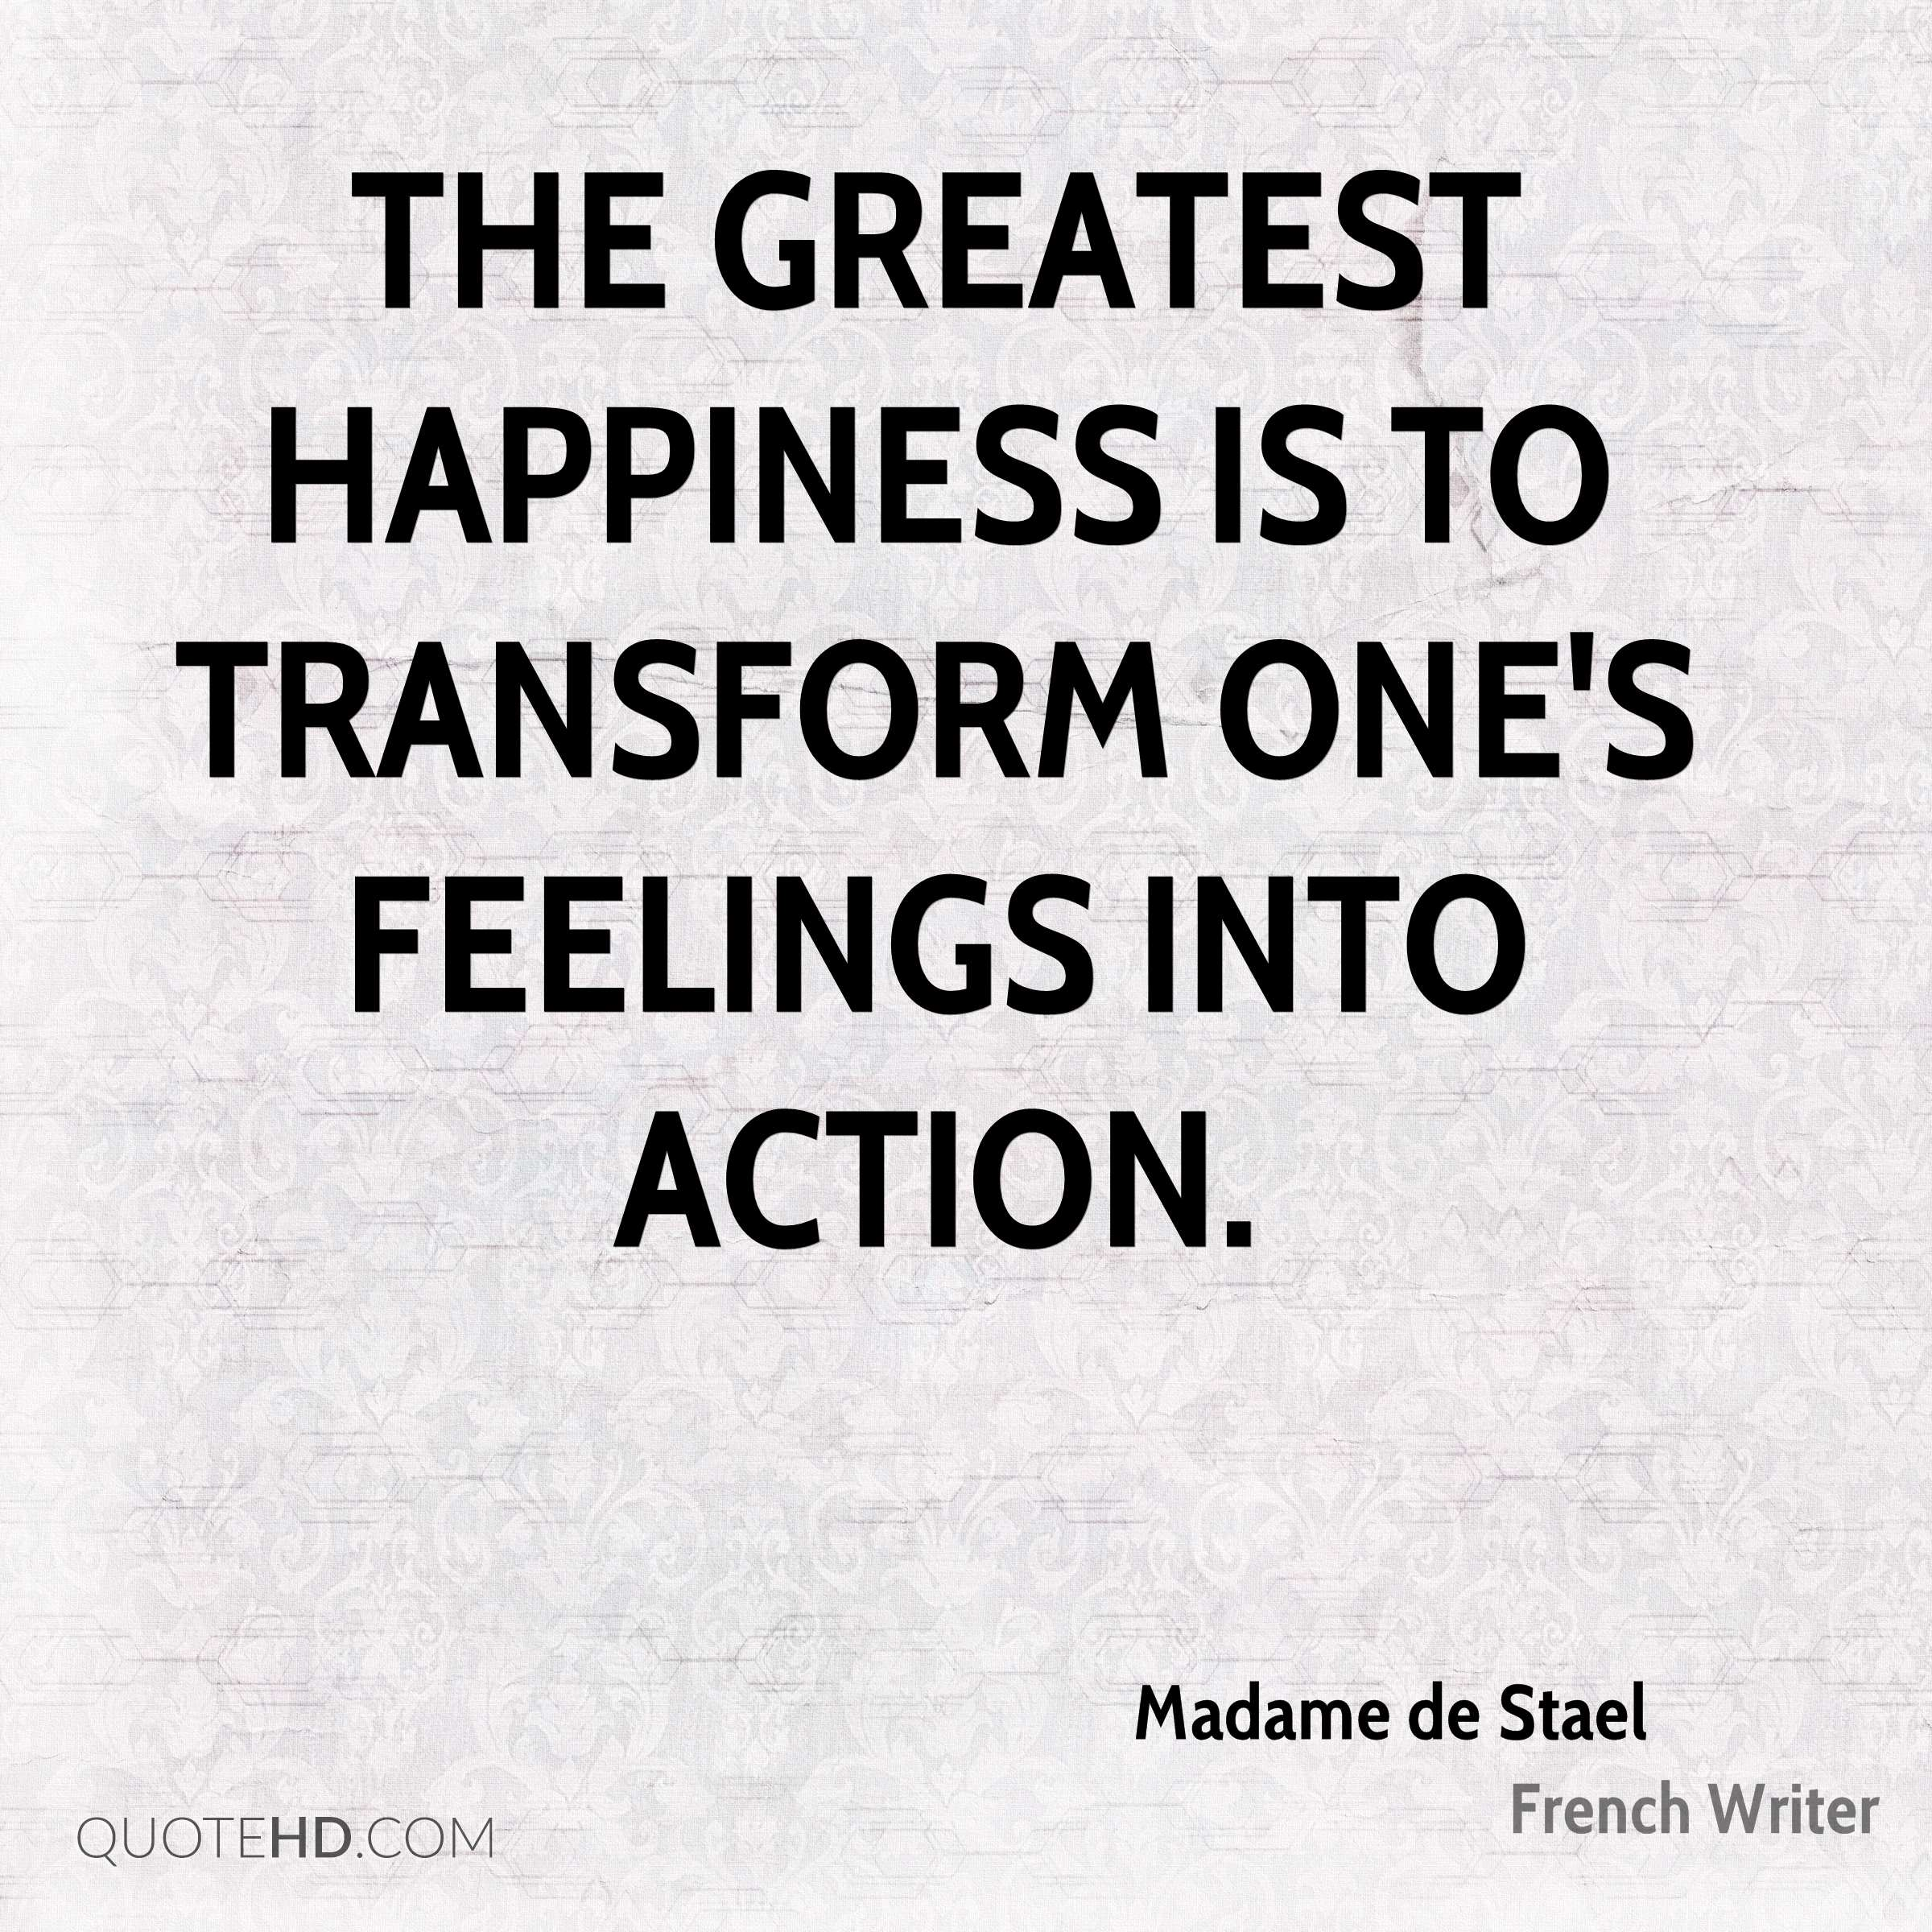 The greatest happiness is to transform one's feelings into action.